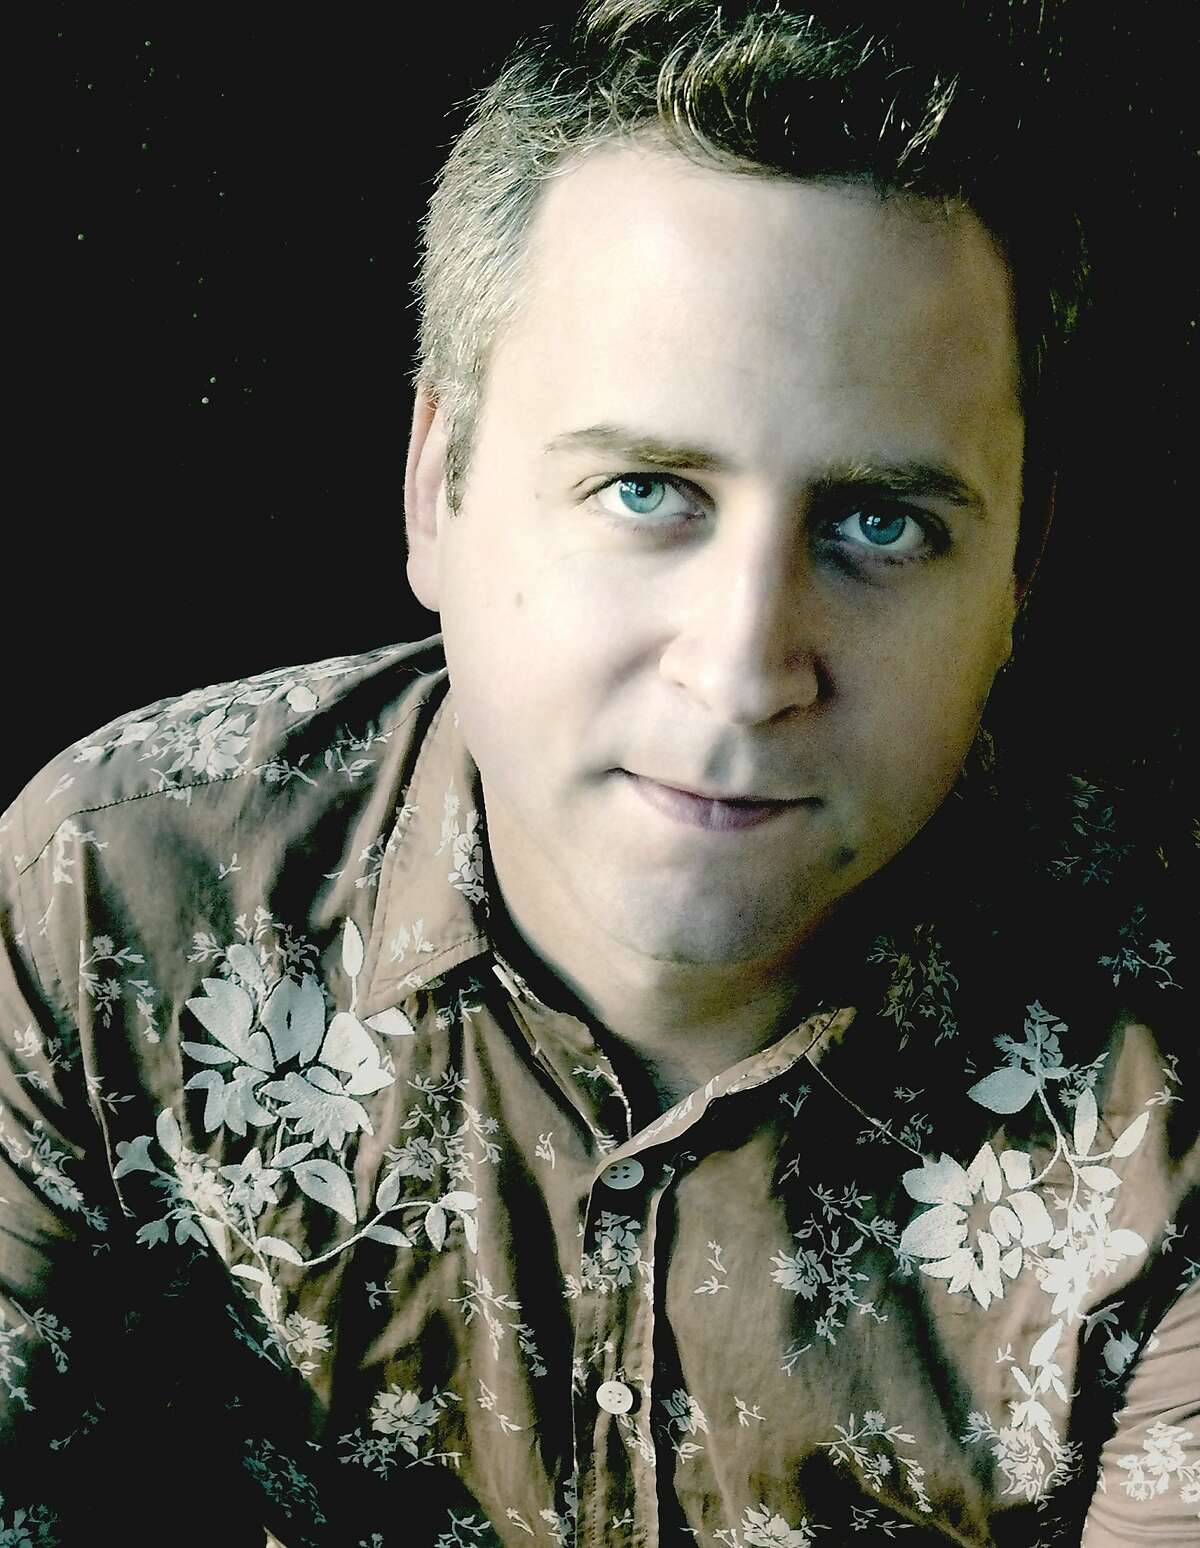 Pianist Jeremy Denk is the artistic director for the Ojai North festival